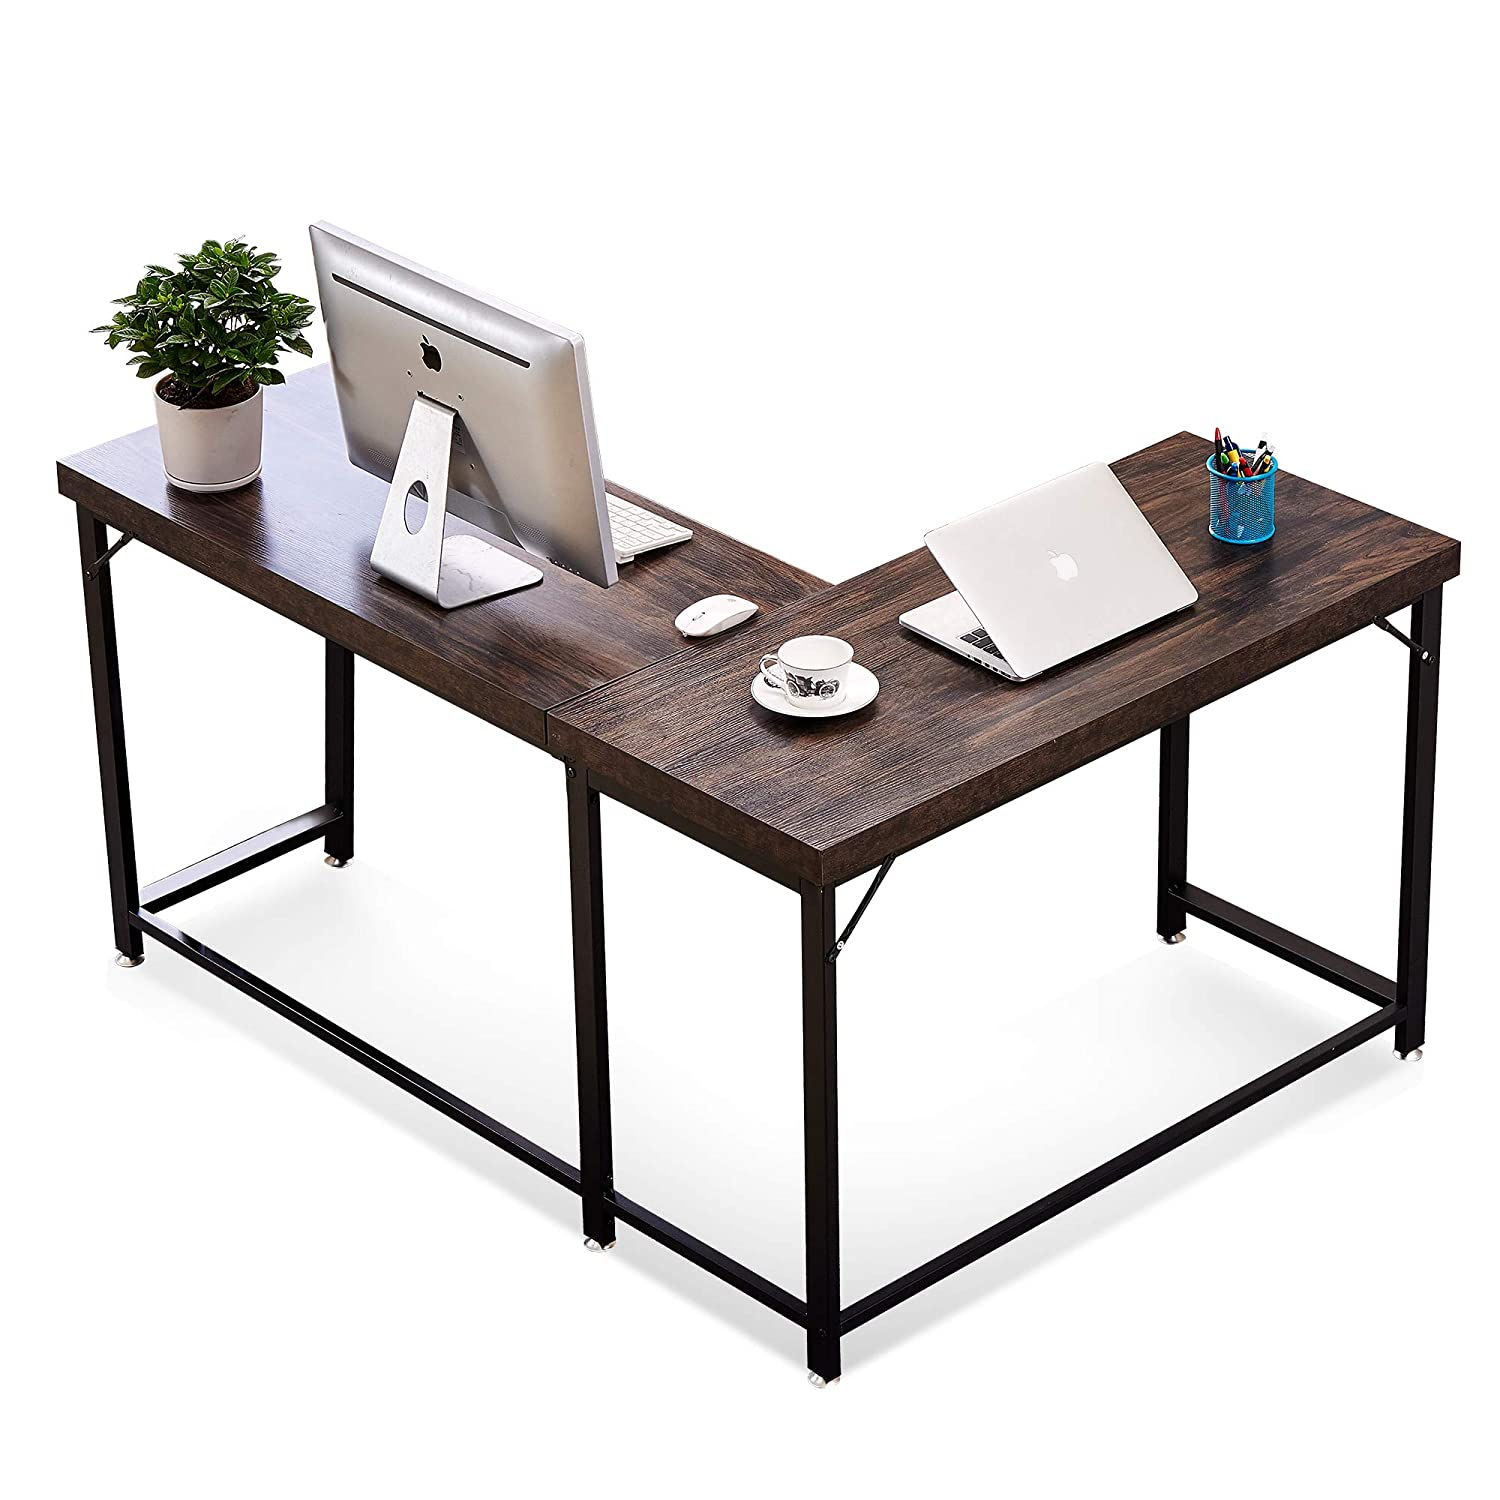 Modern Reversible L Shaped Computer Desk Mid Century Corner Gaming Desk Sturdy Office Writing Desk for Small Space Home Office Workstation with Large Table Top and Metal Leg 58 x 44 Inch